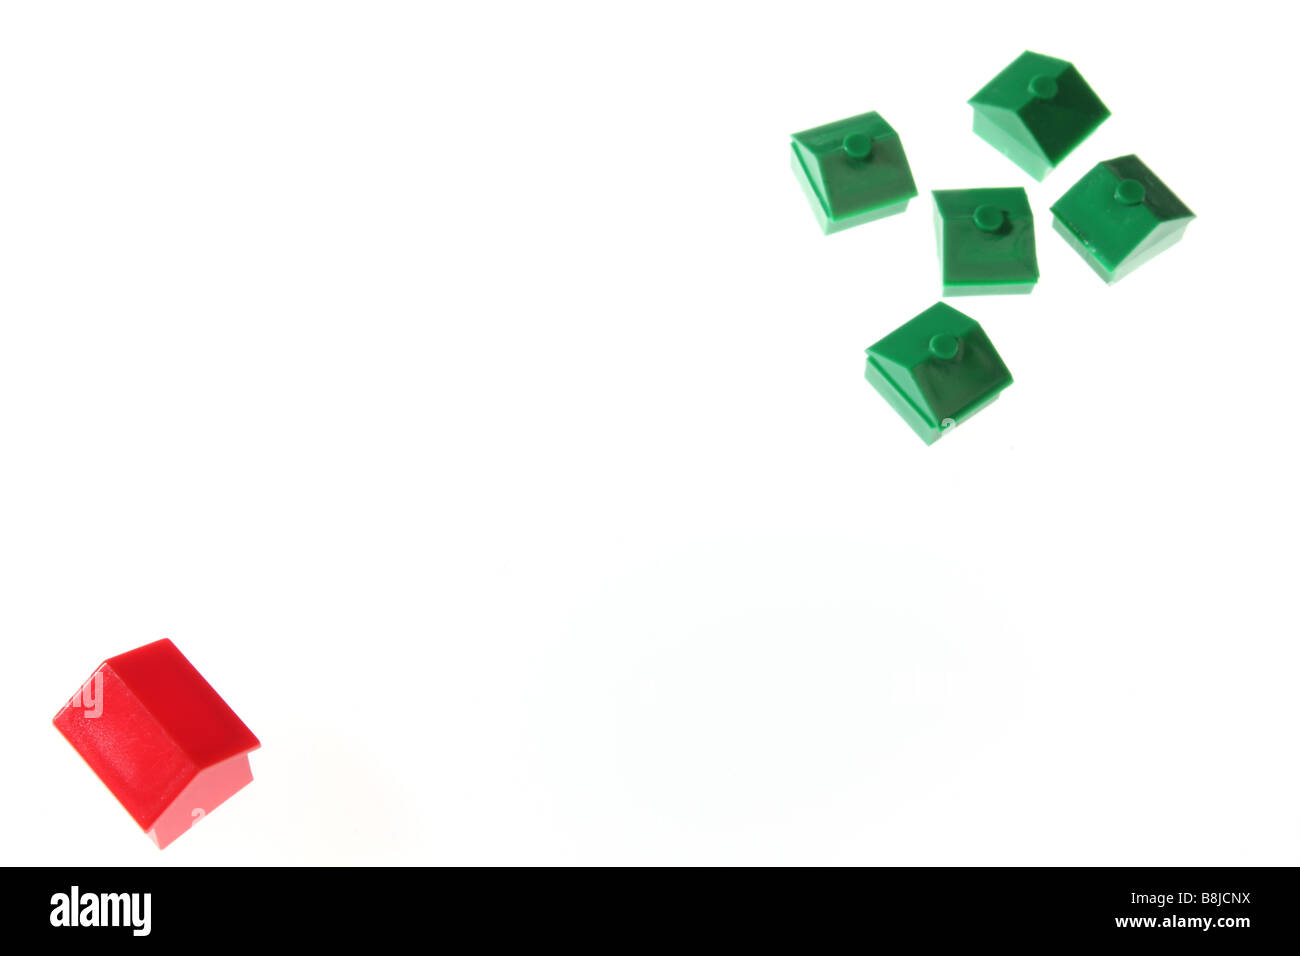 Monopoly houses shot against a white background - Stock Image